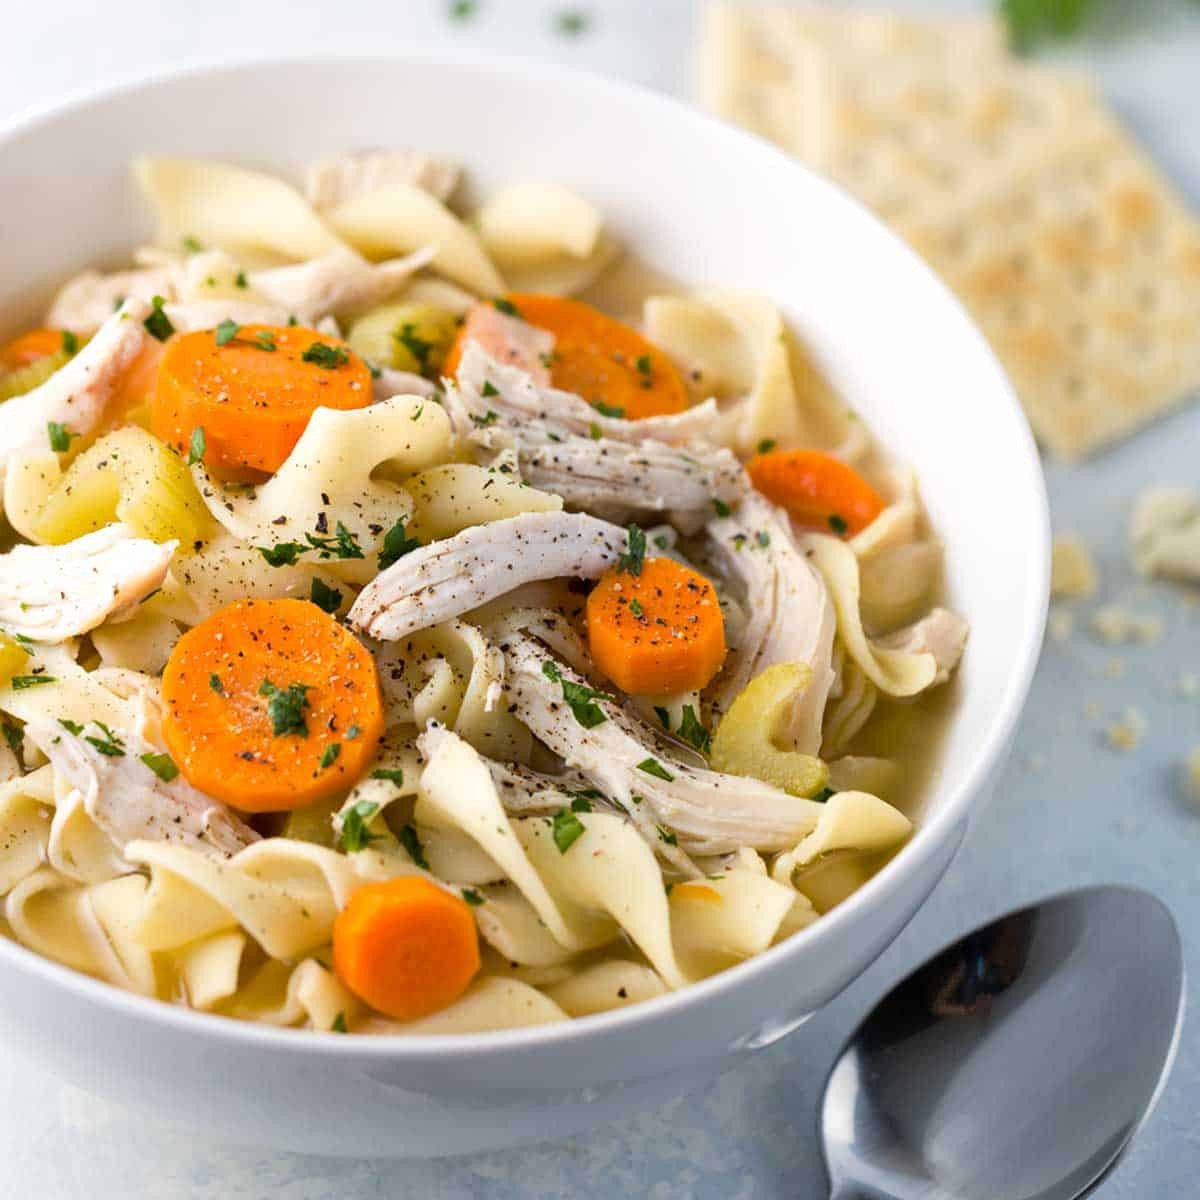 Chicken Noodle Soup Slow Cooker  Easy Slow Cooker Chicken Noodle Soup Recipe